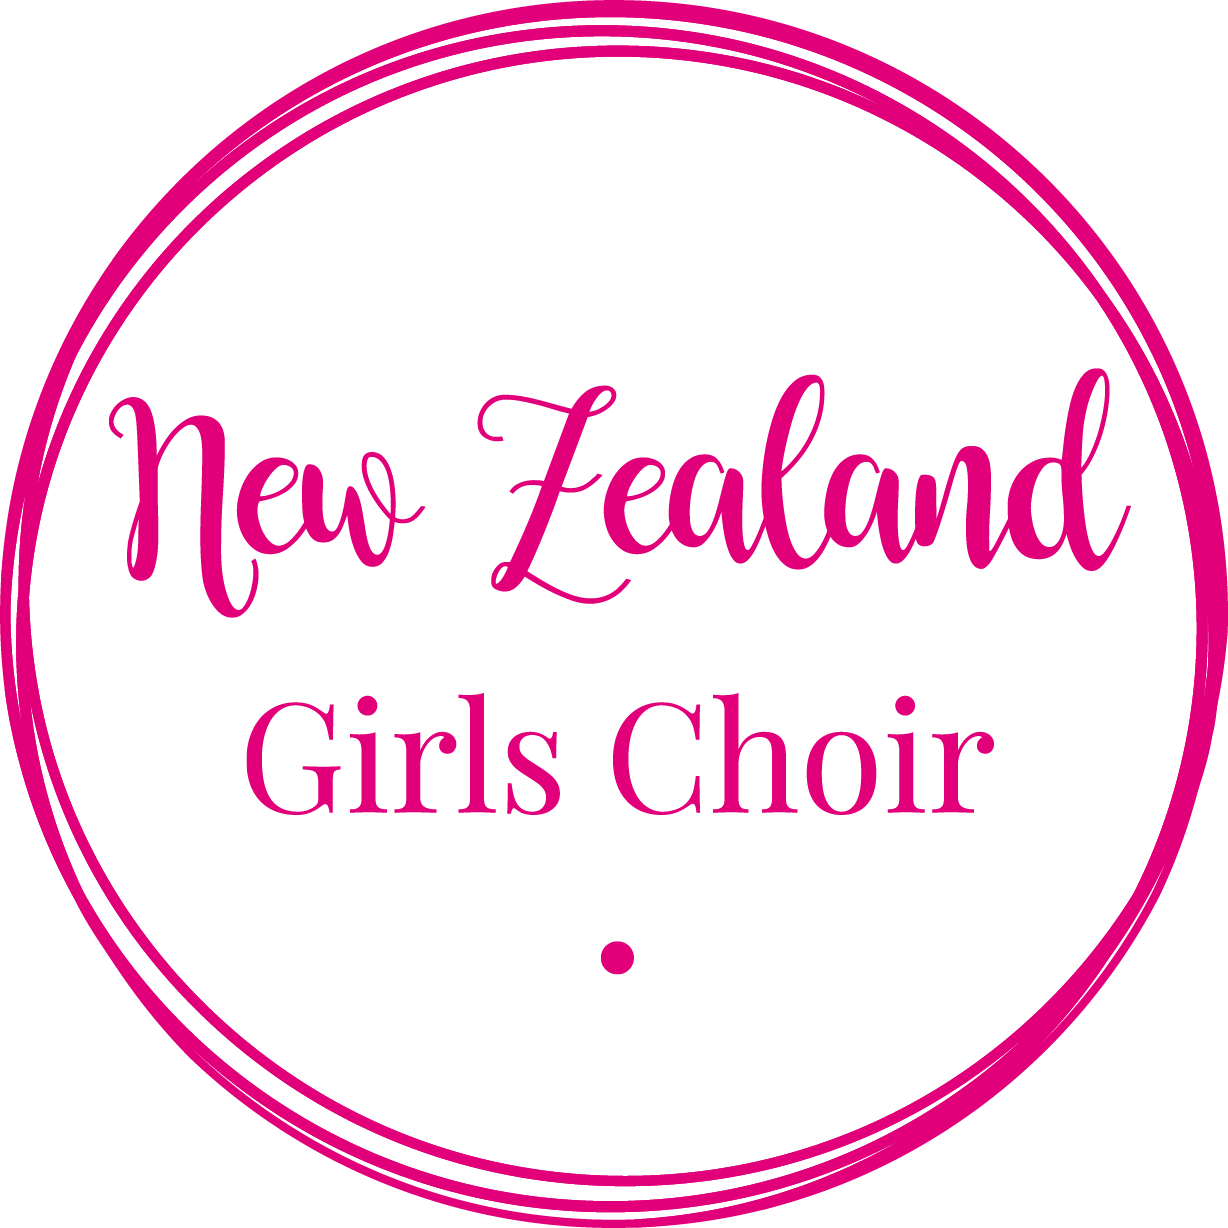 New Zealand Girls Choir